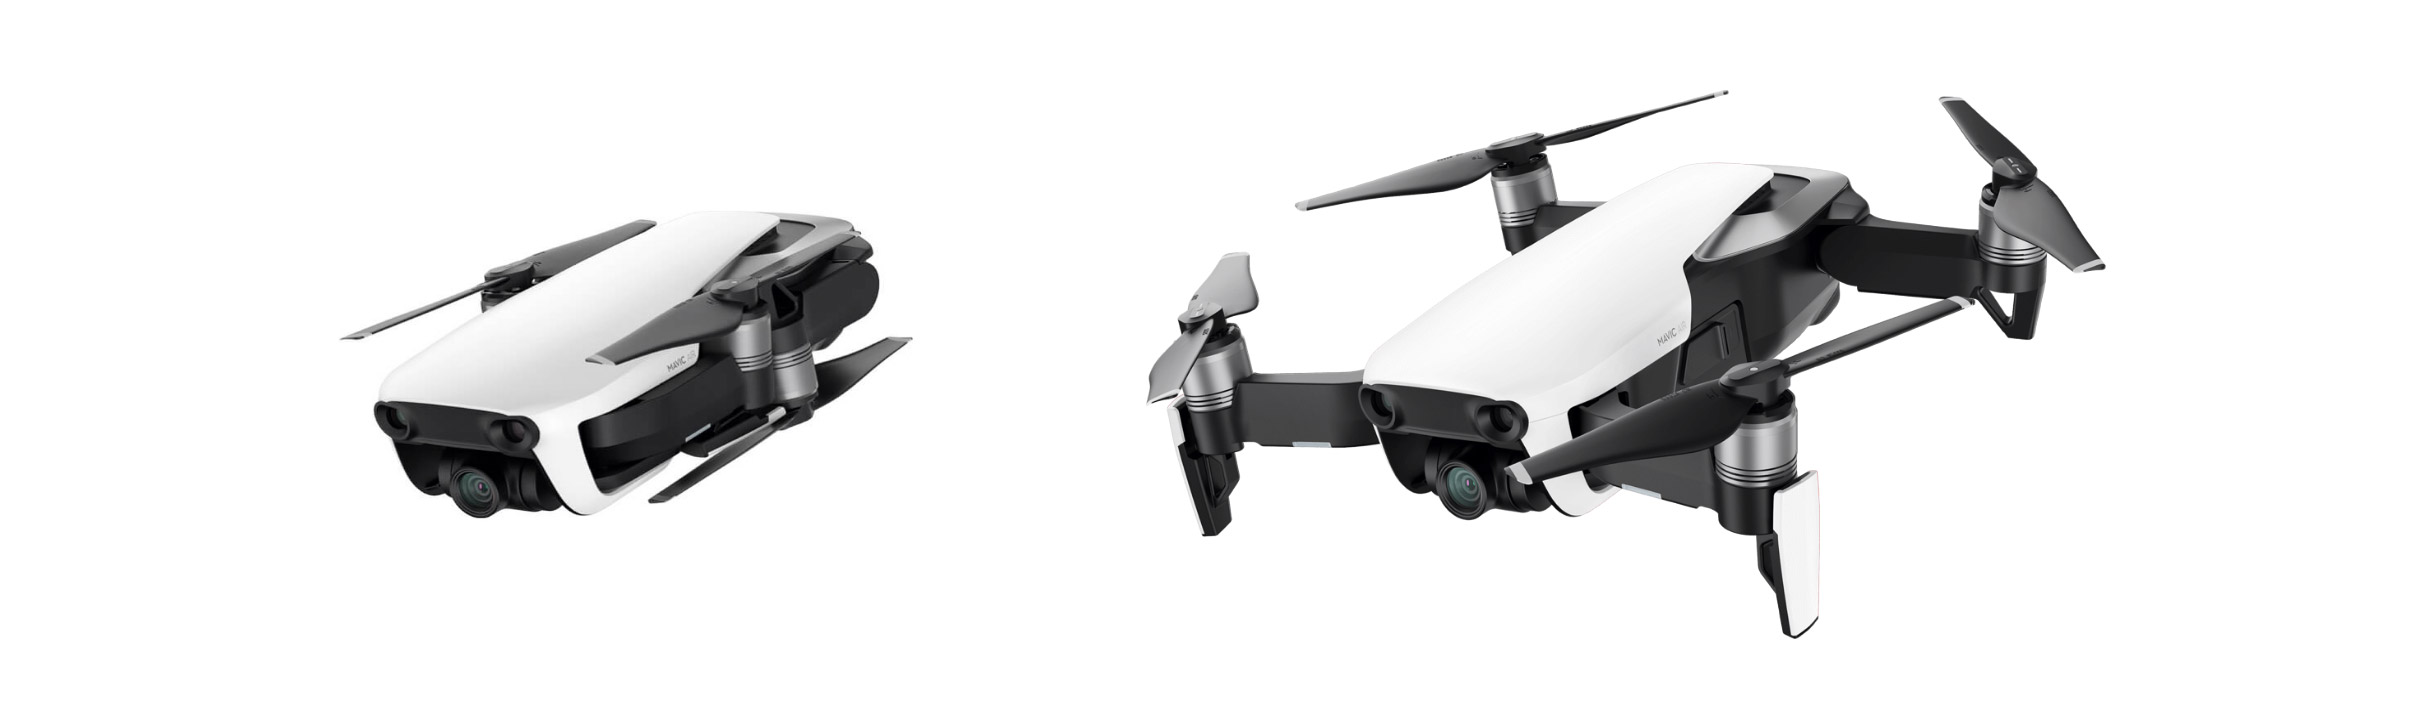 DJI Mavic Air Fly More Combo Item Details